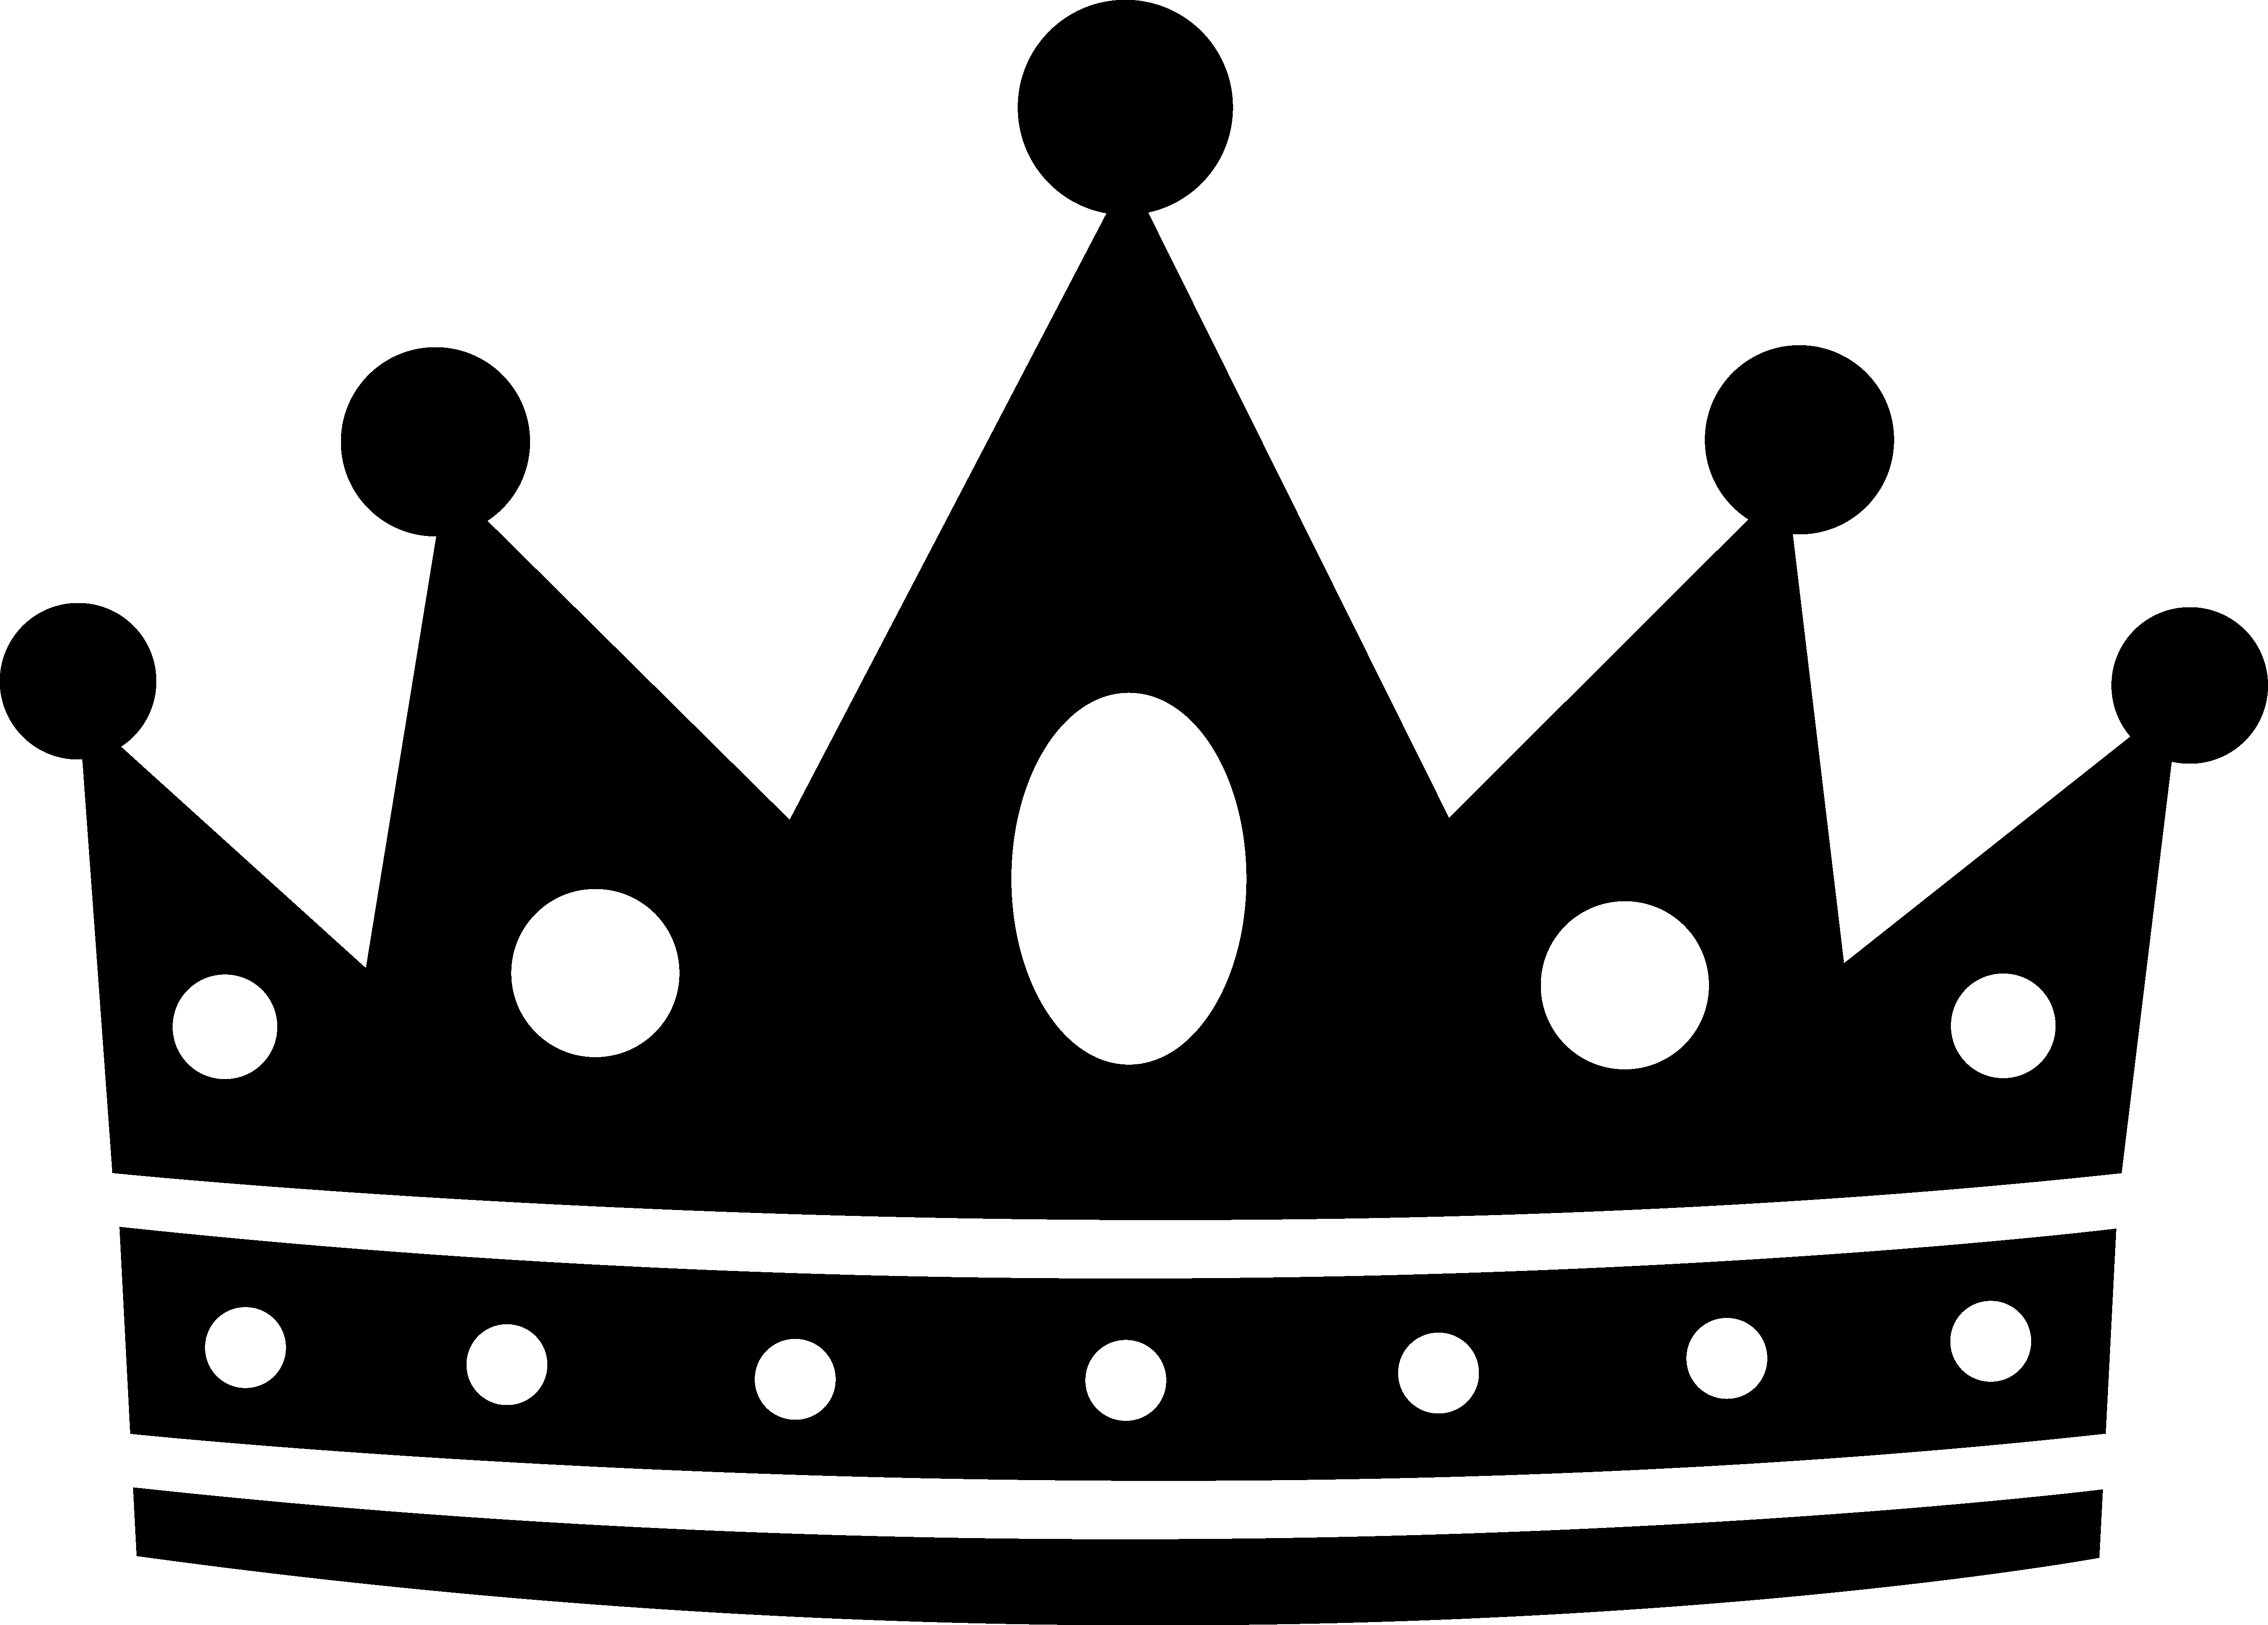 Fresh king gallery digital. Crown clipart picture black and white download